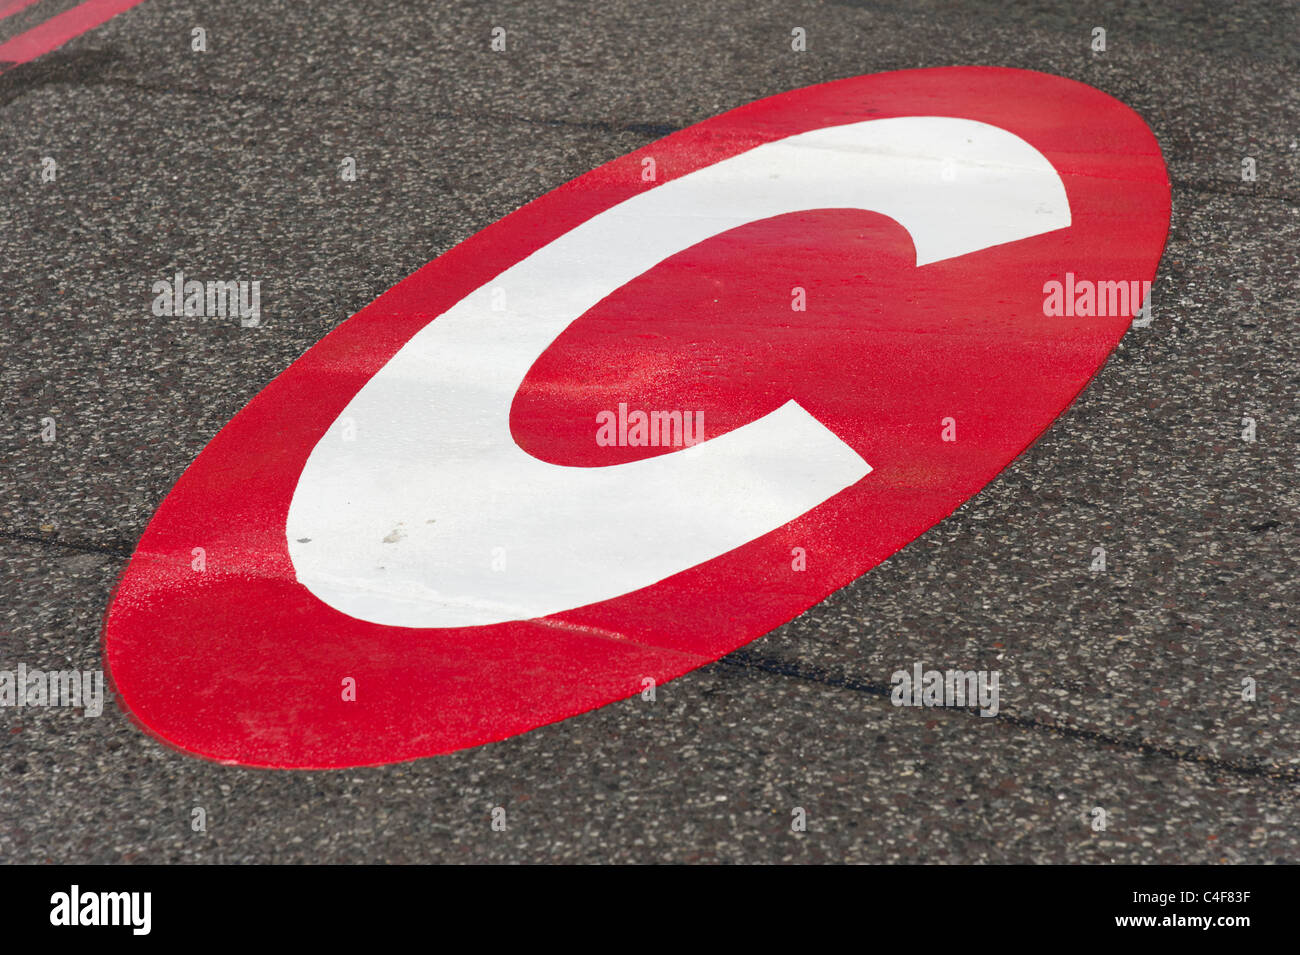 London congestion charge signe, Londres, Royaume-Uni Photo Stock